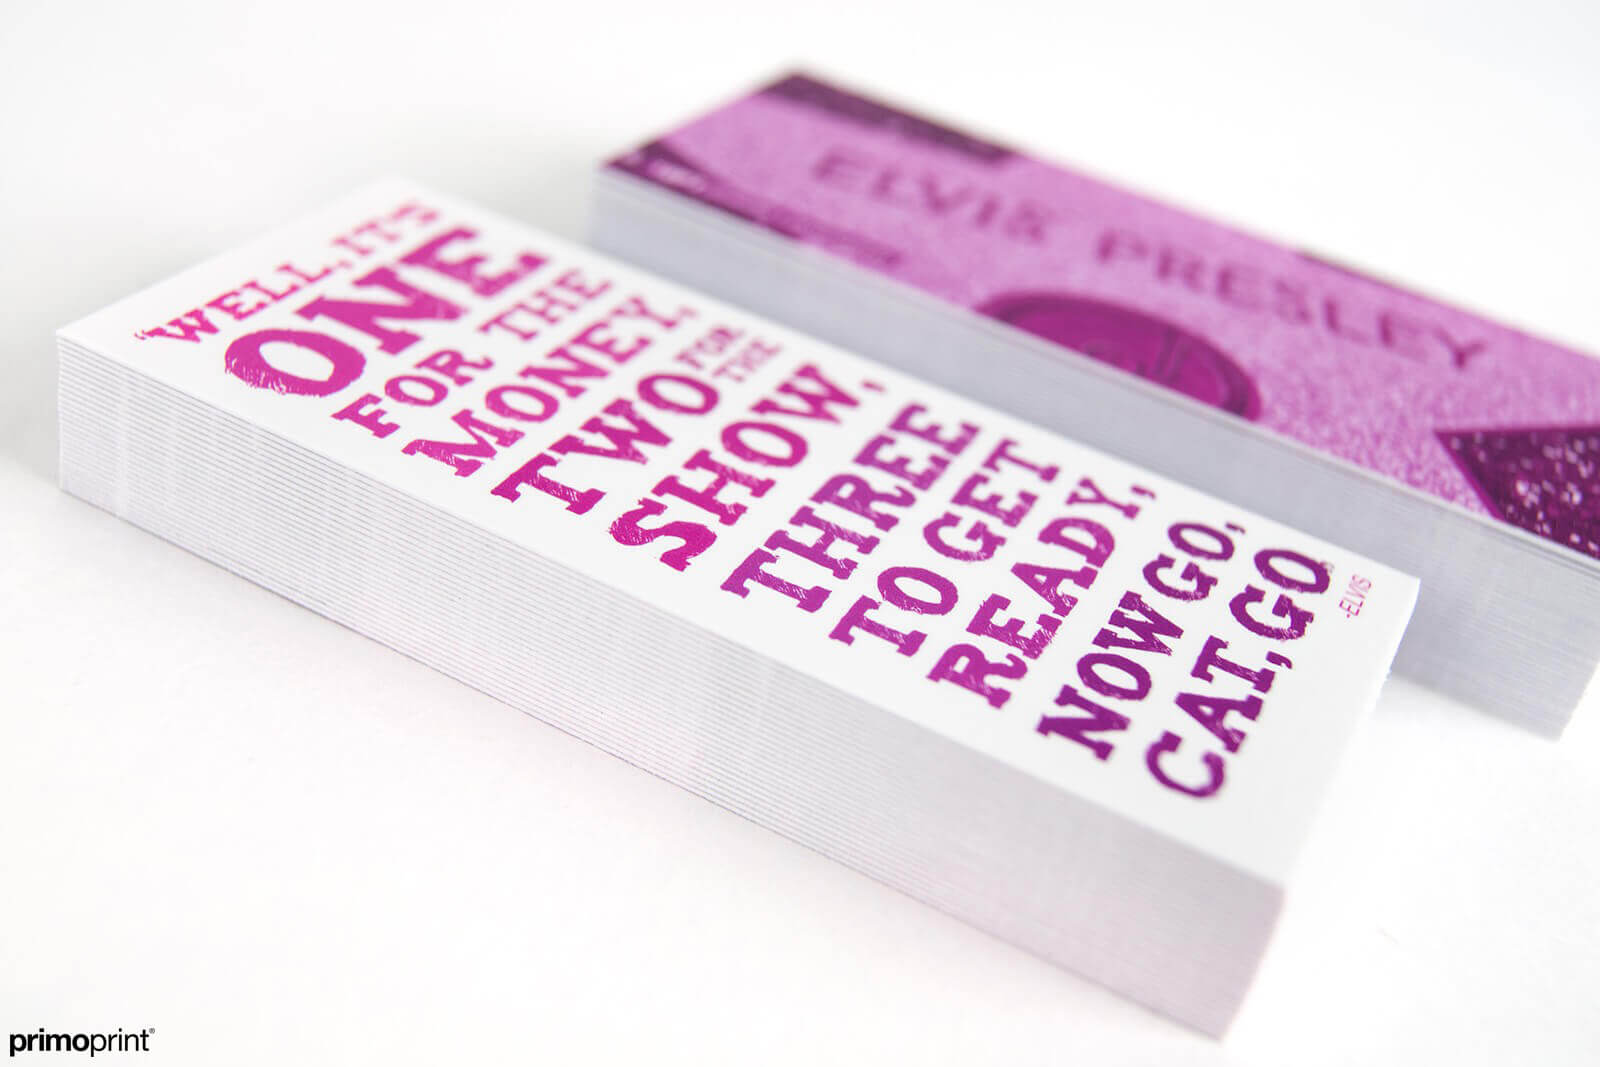 Slim Velvet laminated business cards printed by Primoprint.